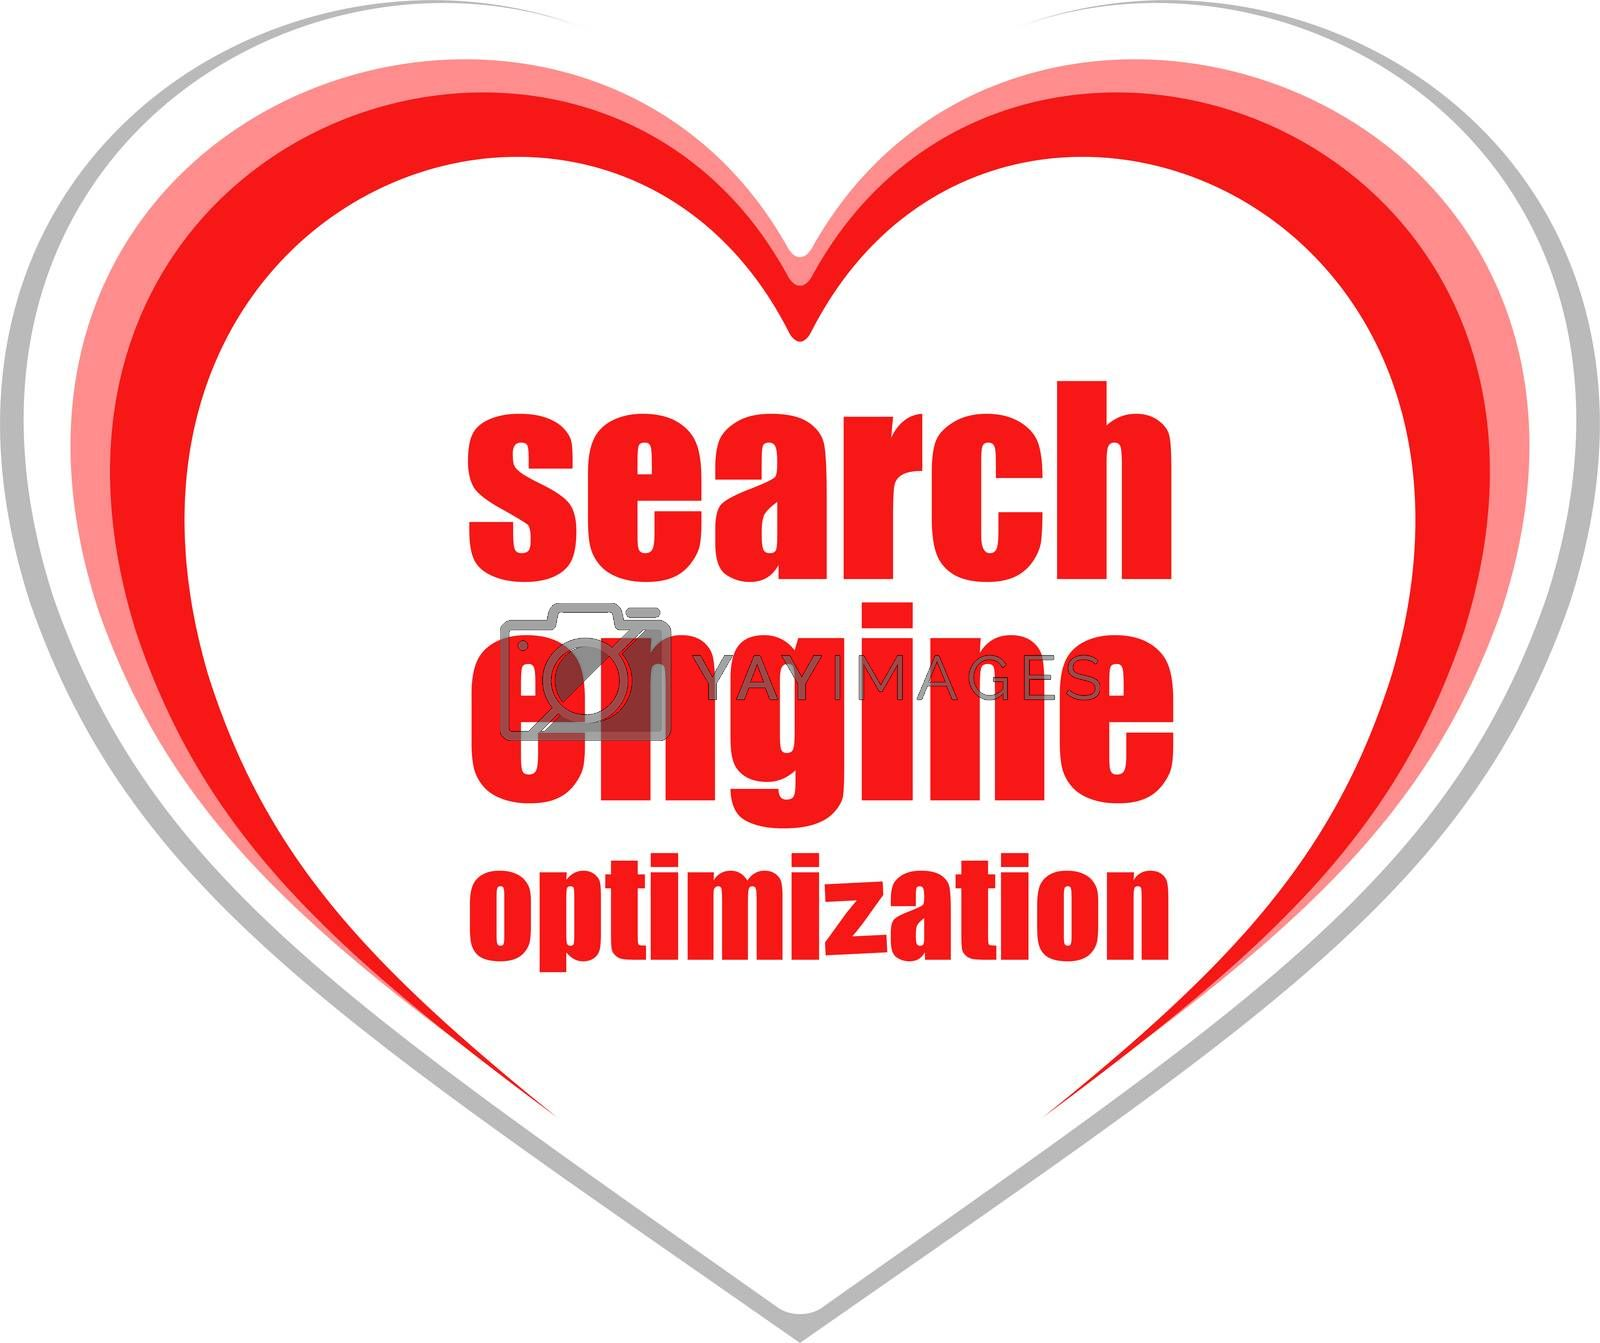 Search Engine Optimization Text. Information concept